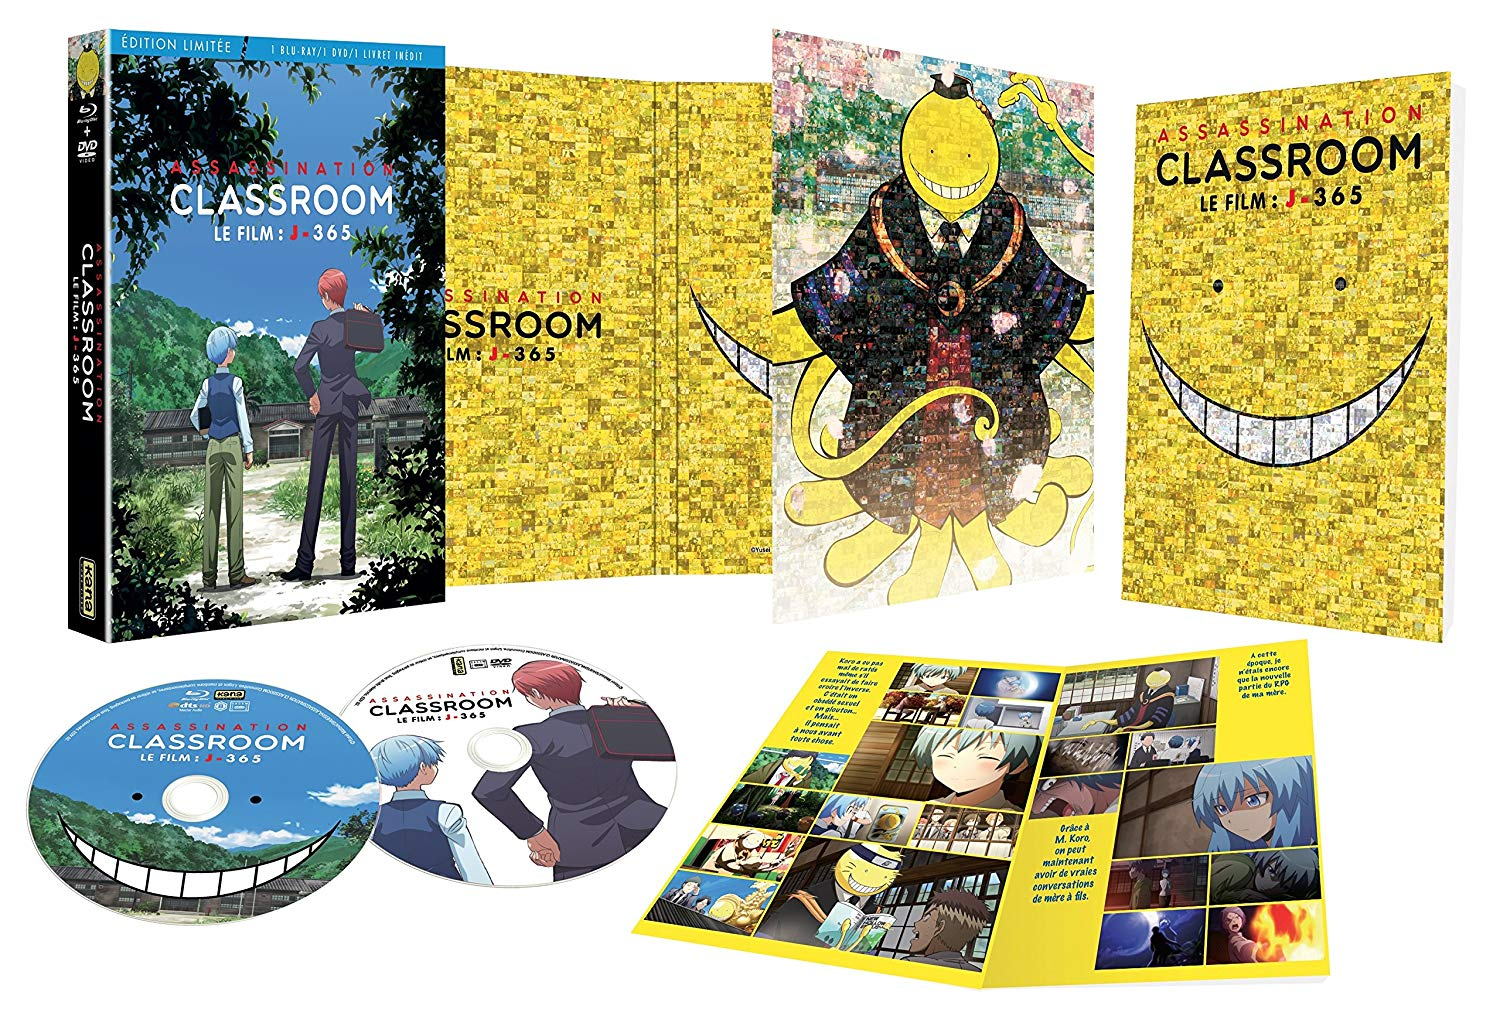 Assassination Classroom Le Film J-365